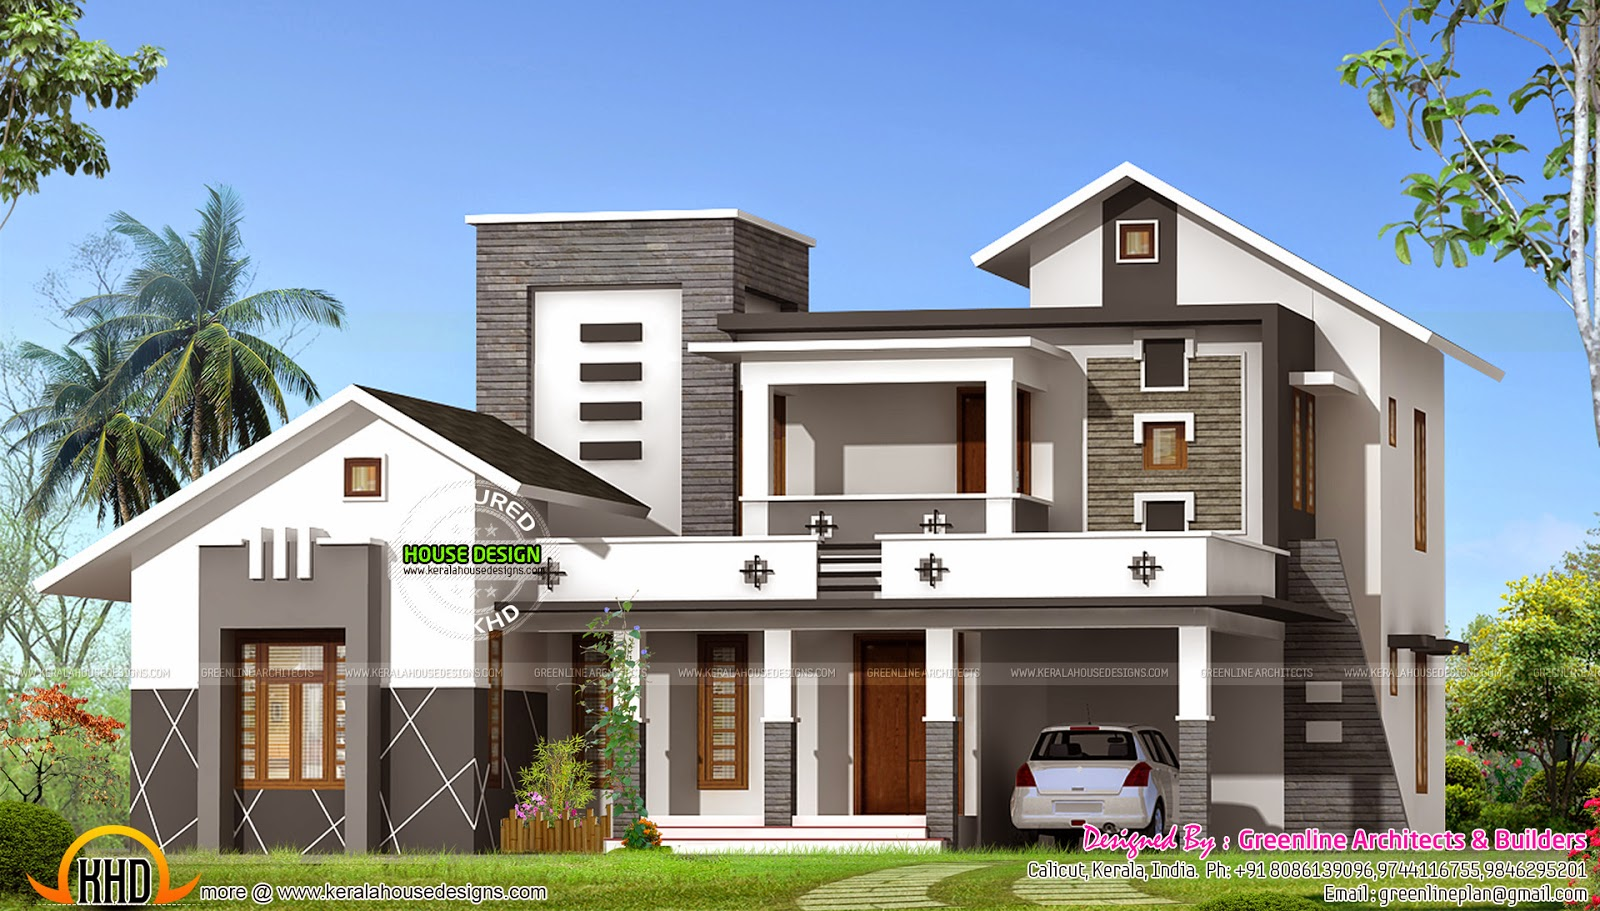 Kerala home design and floor plans 2400 sq ft mixed roof for Find house plans online